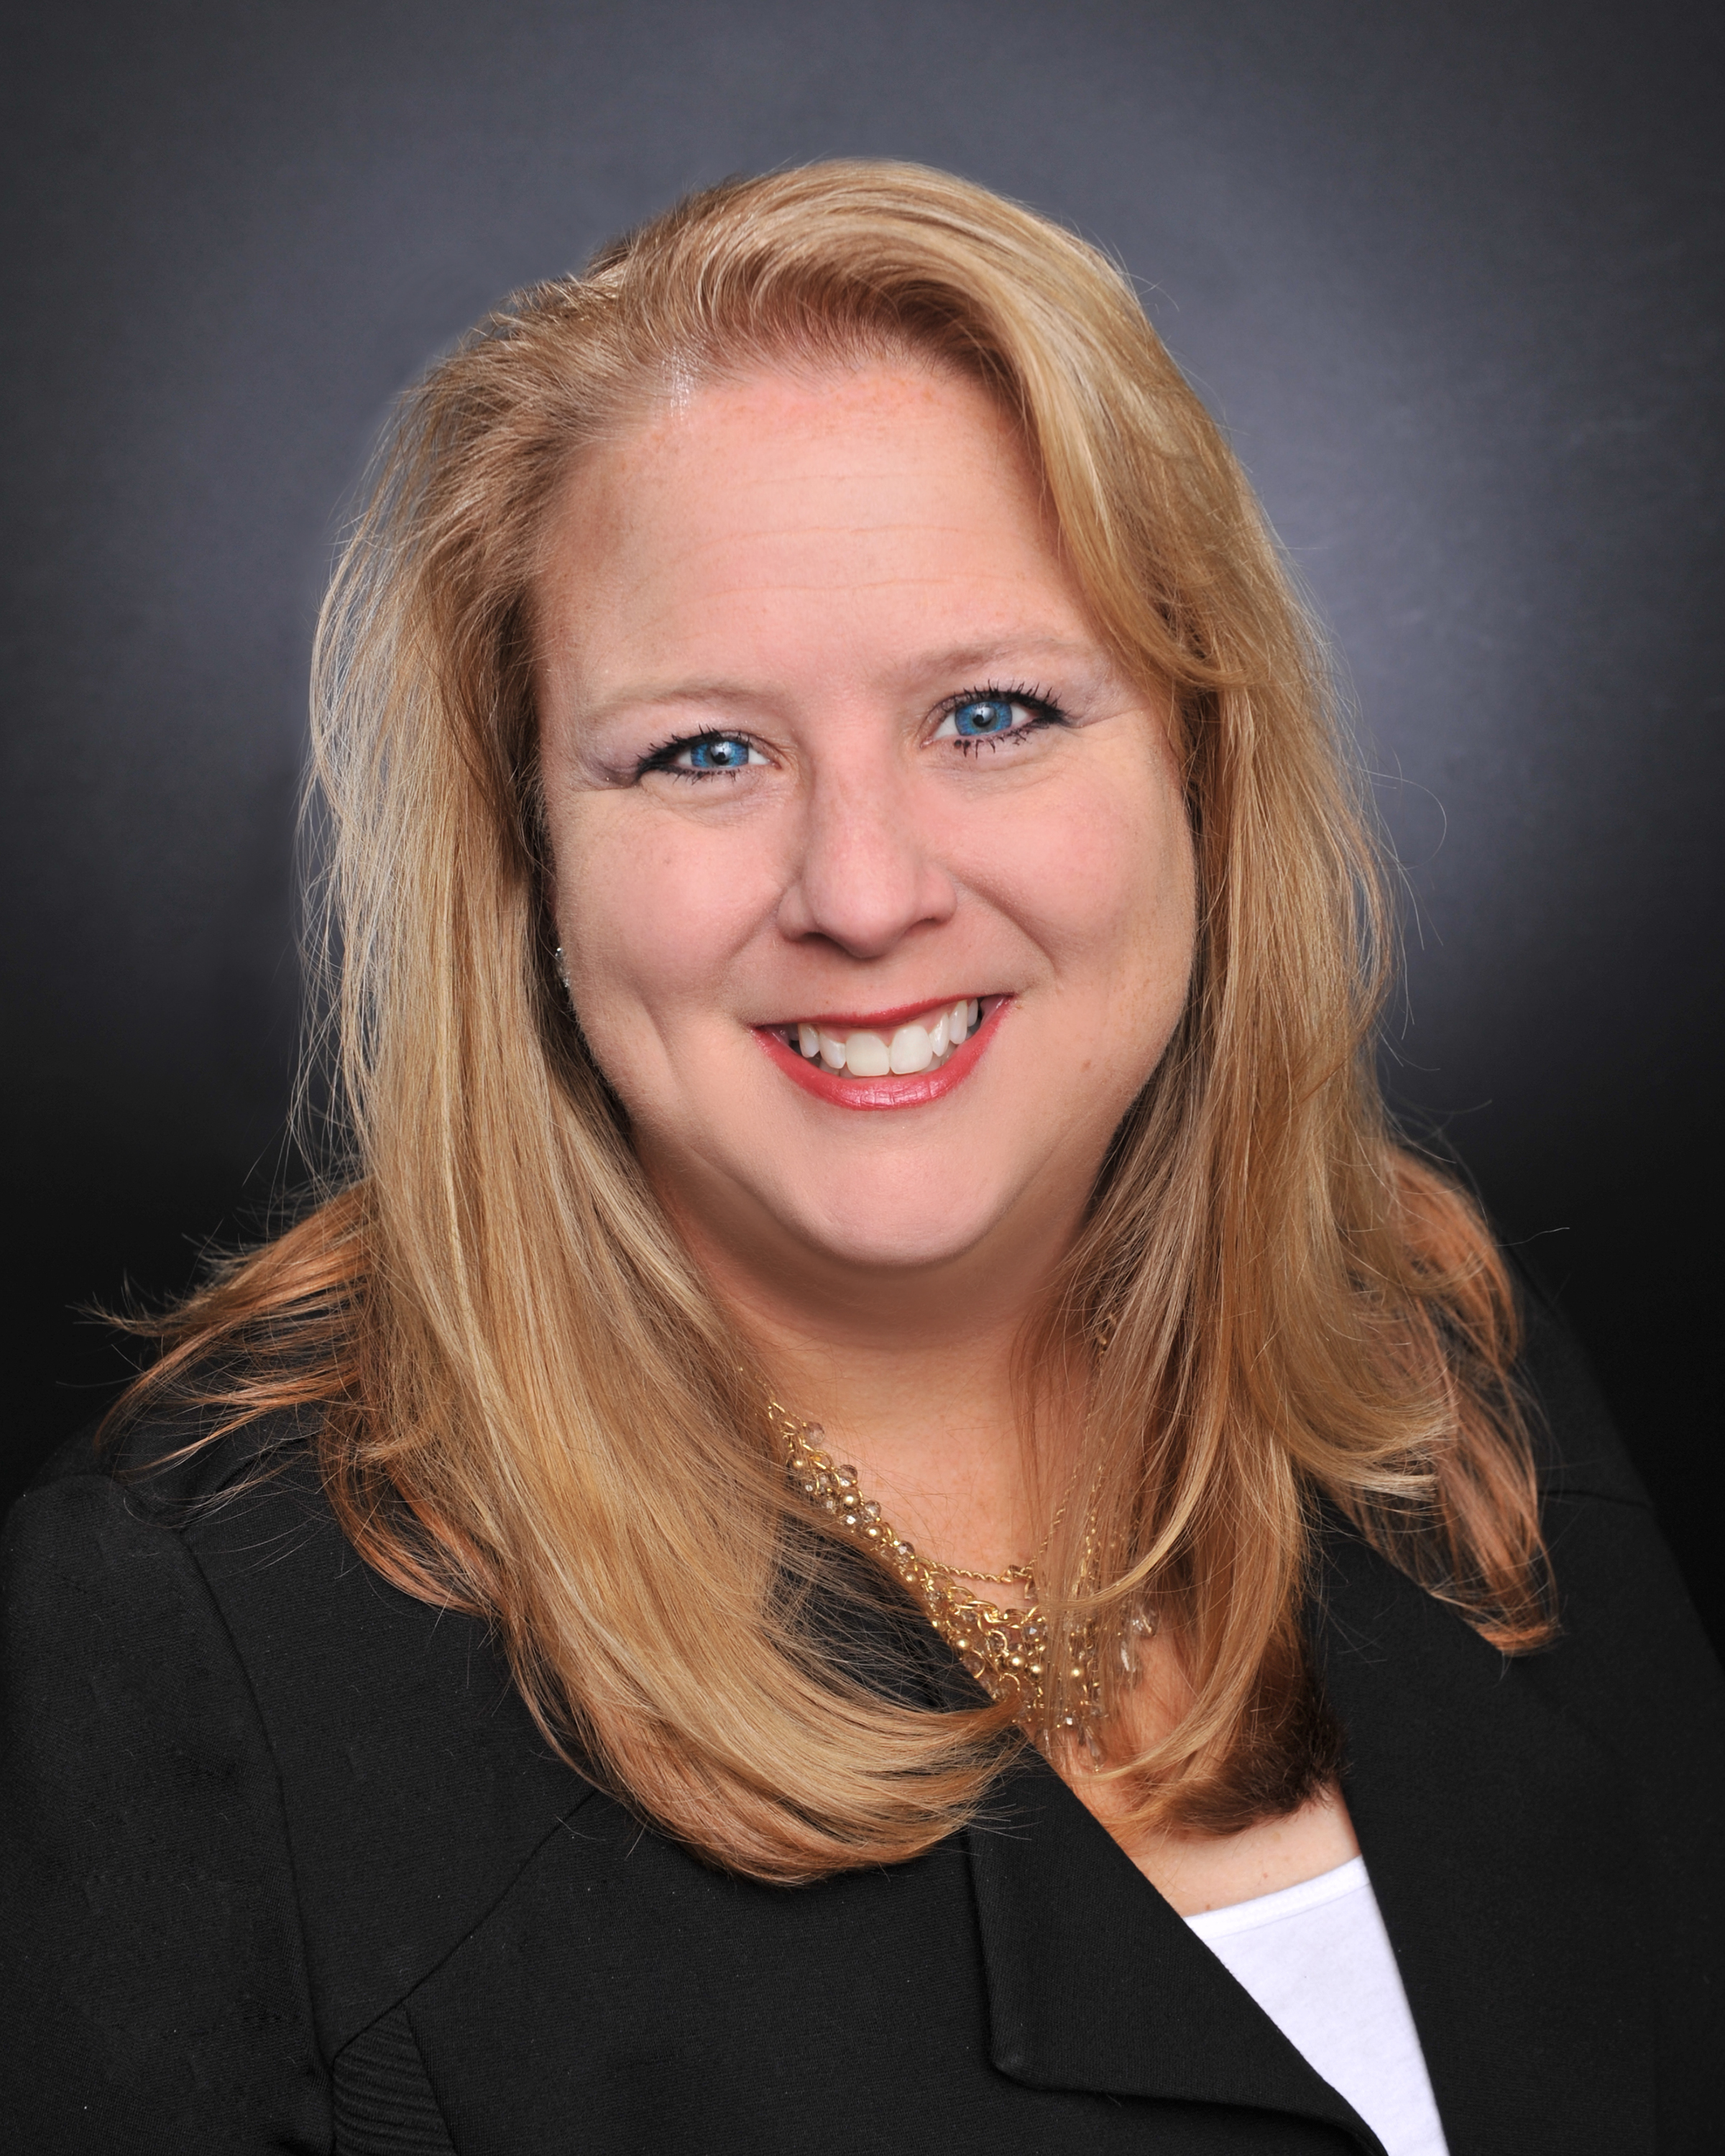 CHRISTY HIATT<br>Associate Broker